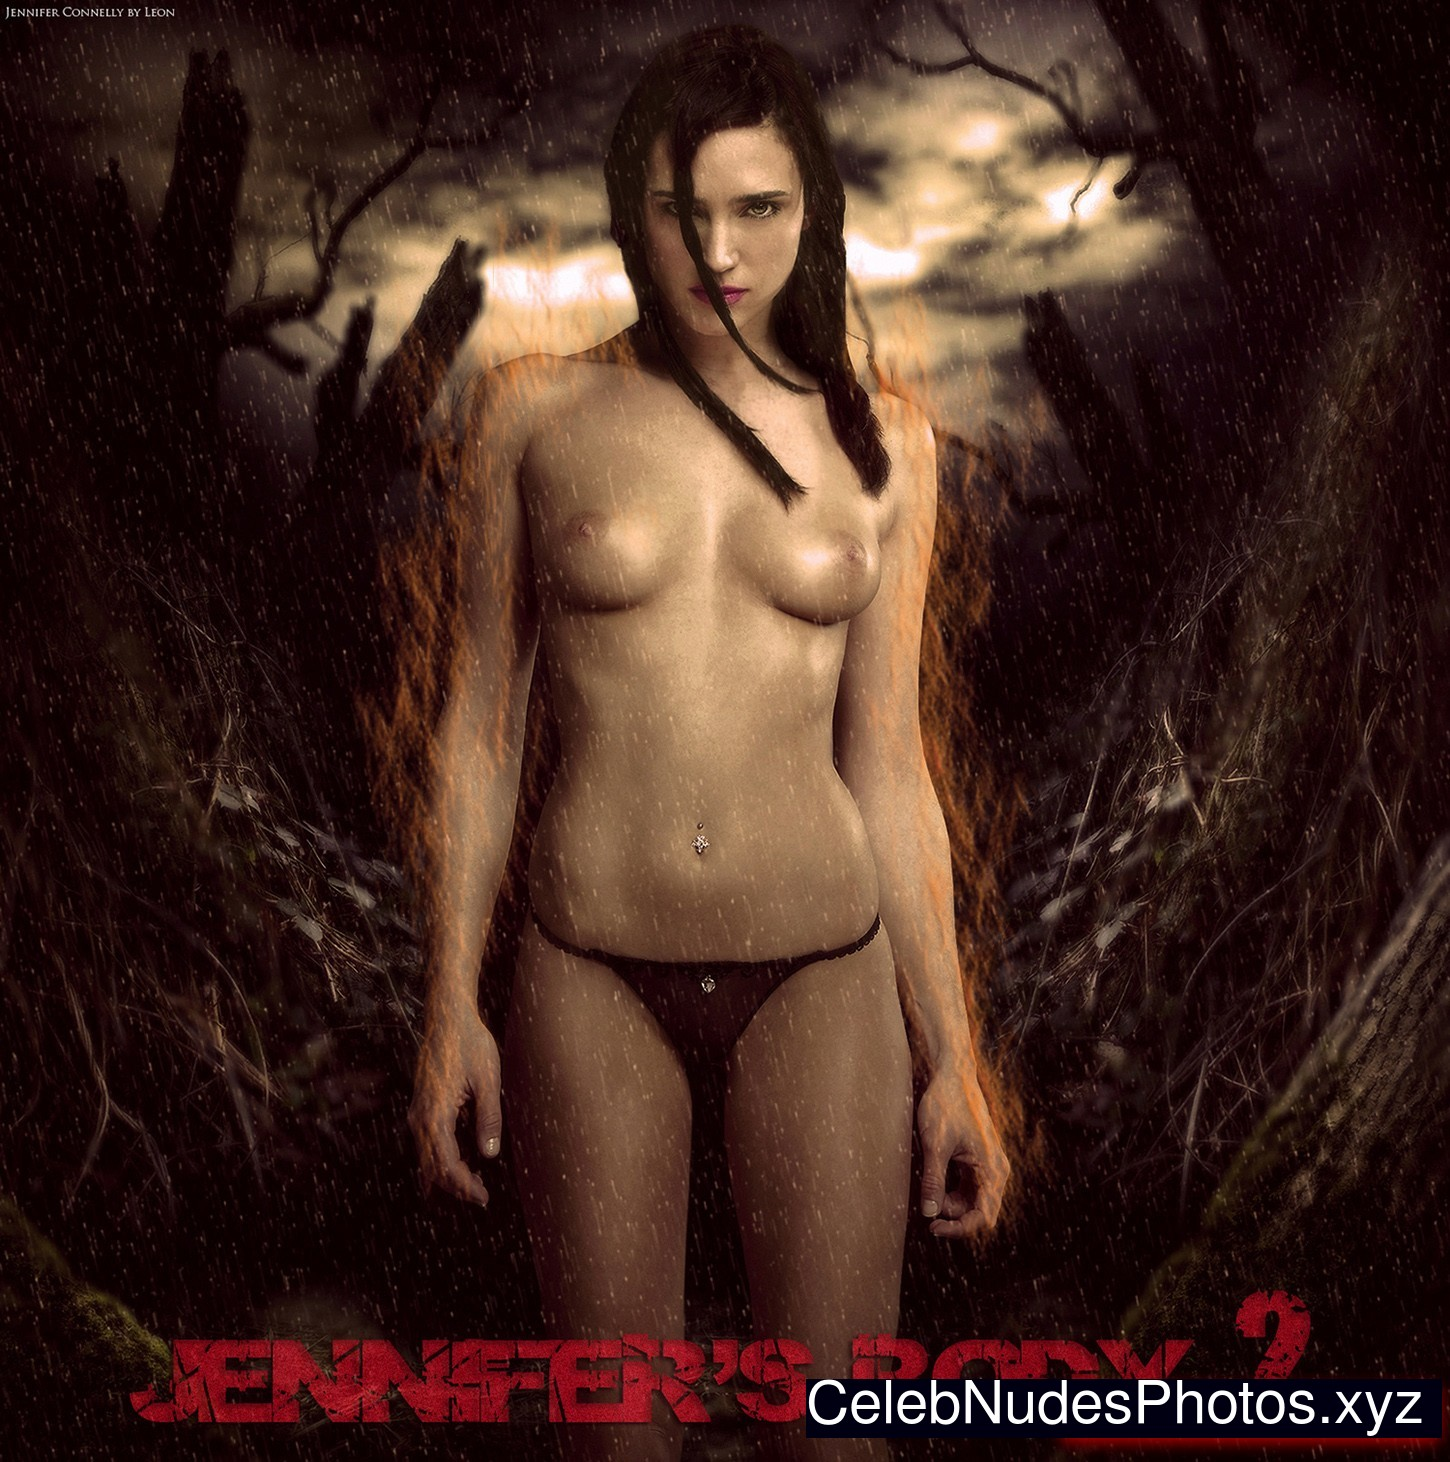 Connelly jennifer naked pic will